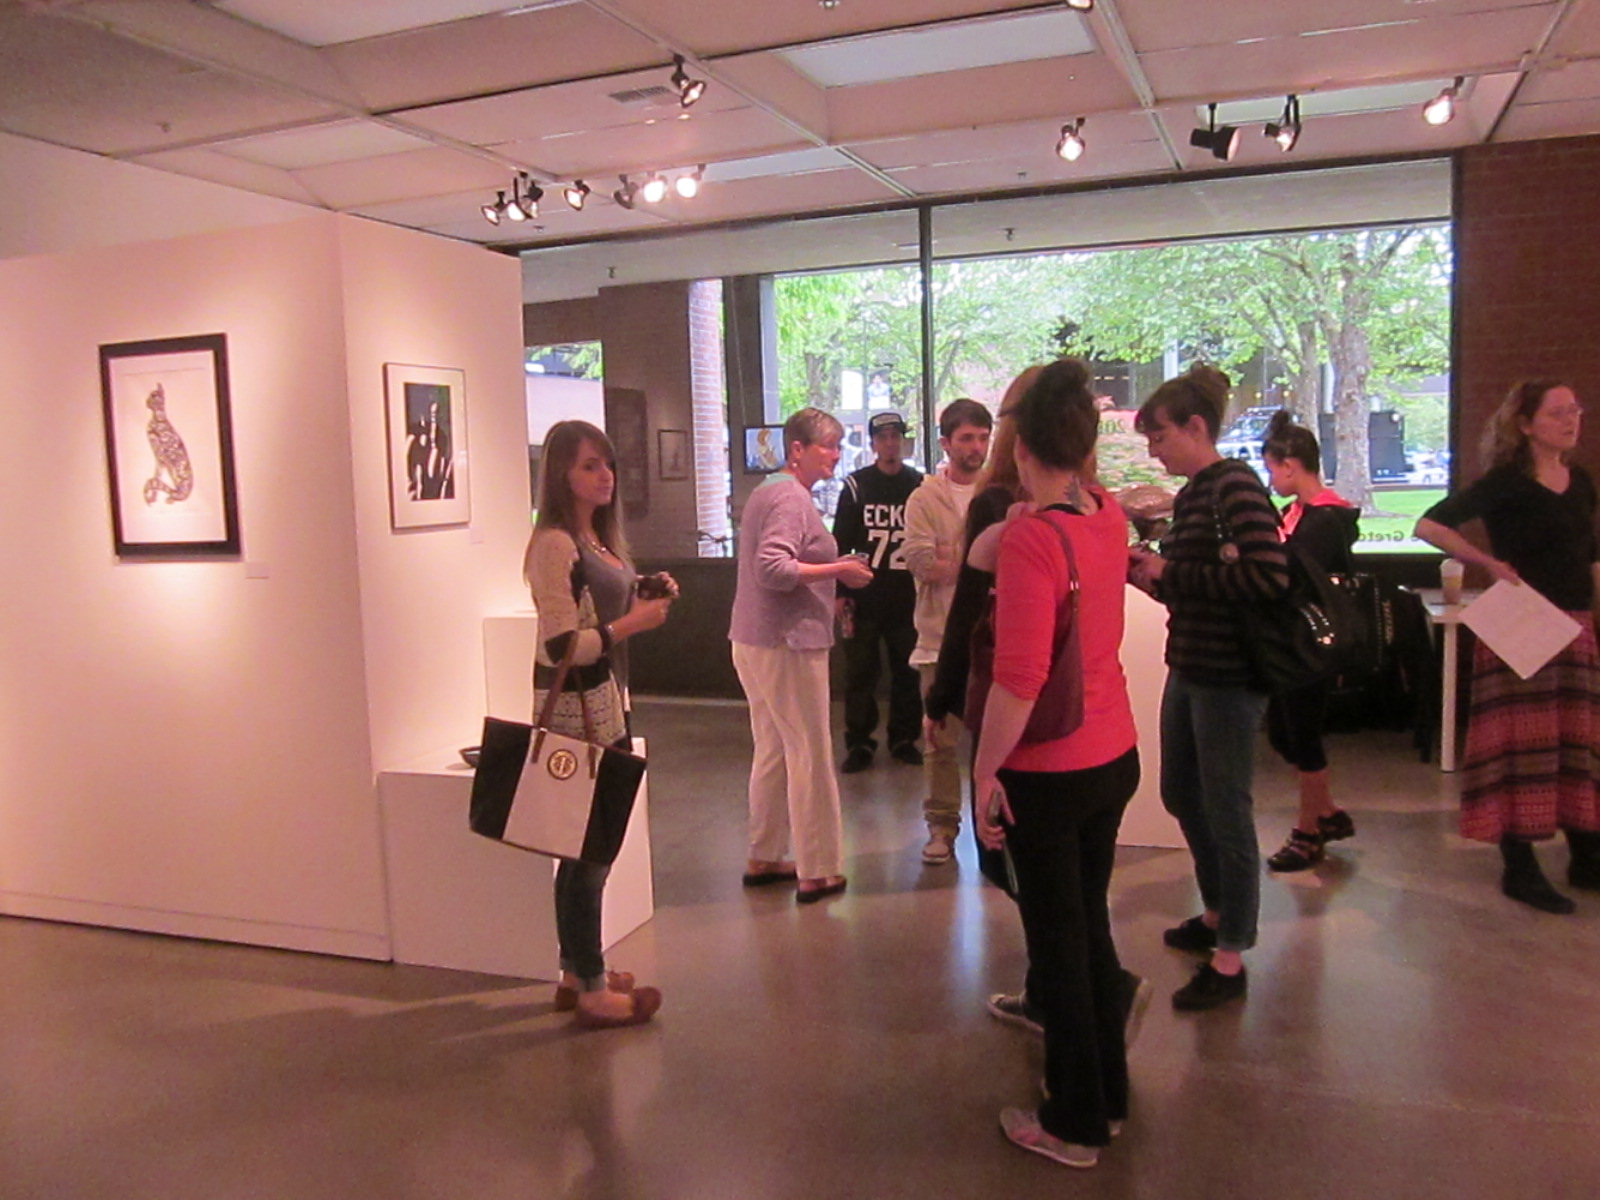 Gallery patrons mingle during the Student Art Show opening on May 13.